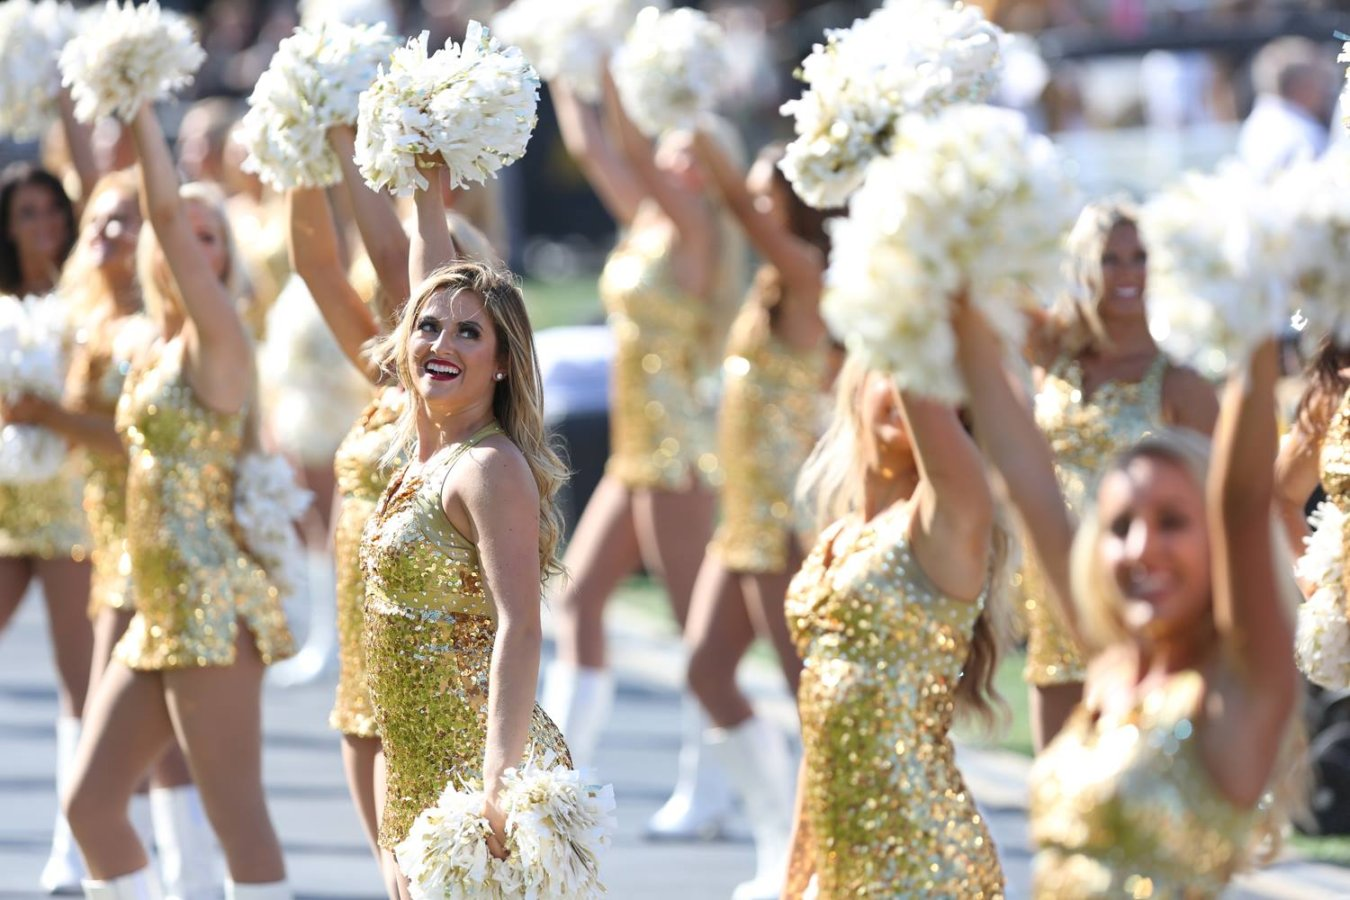 This is a picture of the Mizzou Golden Girls dancing.